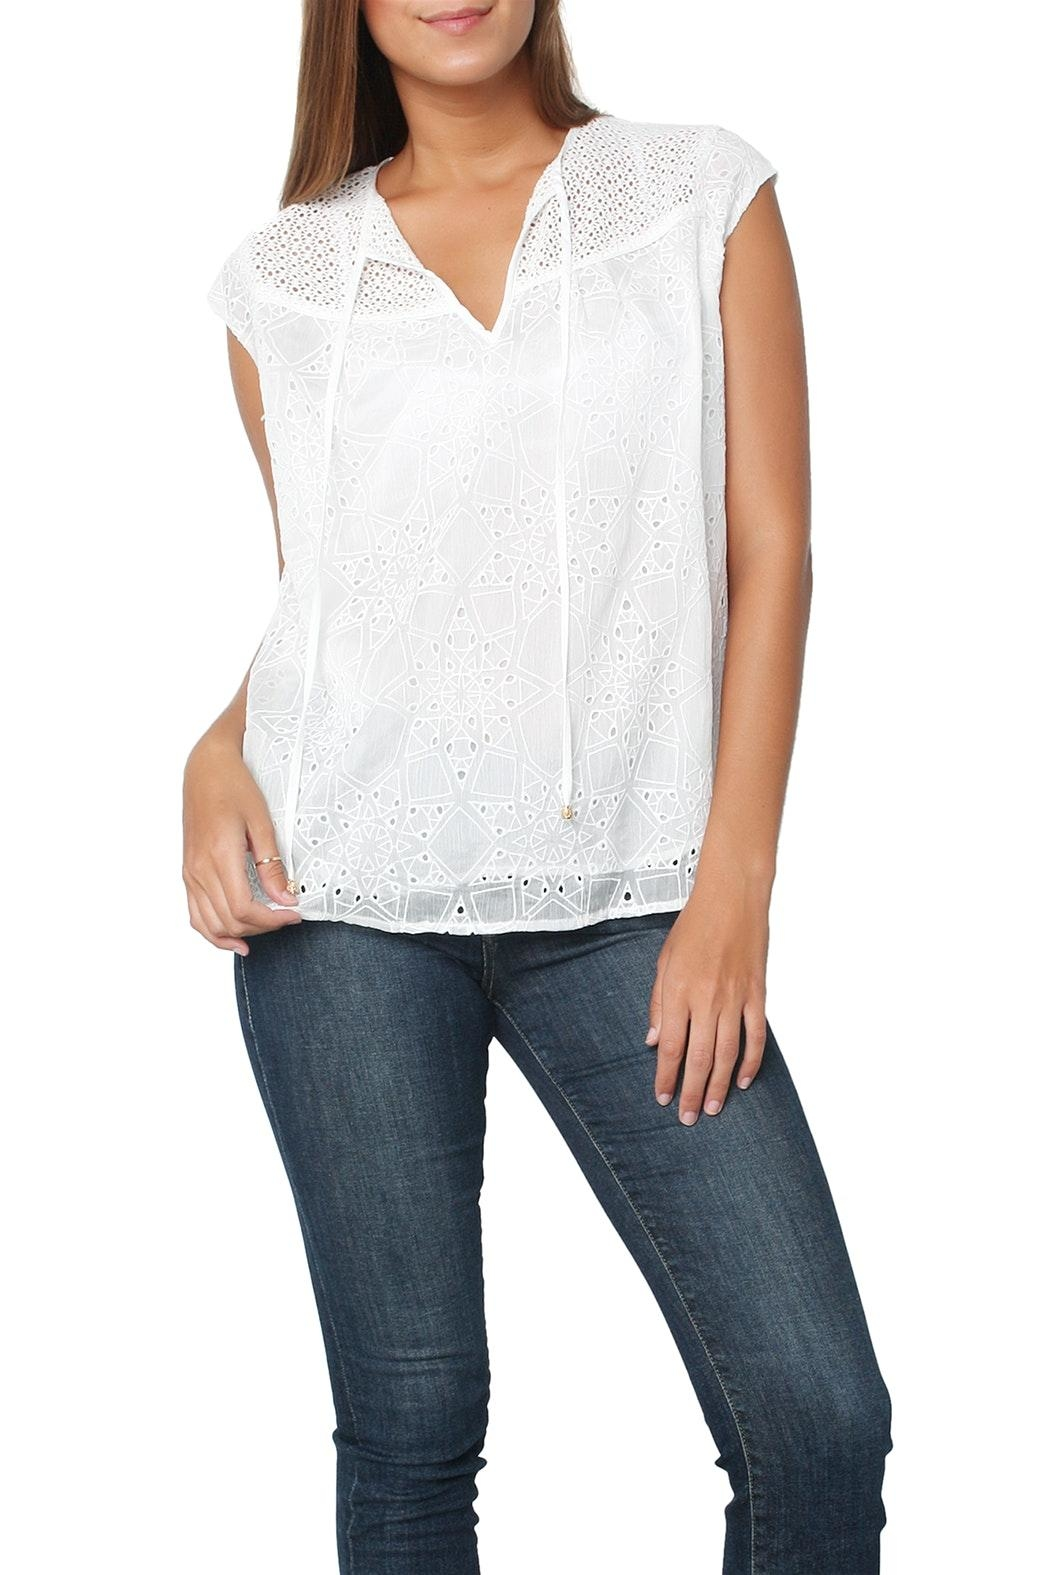 Heartloom Imogen Eyelet Top - Front Cropped Image